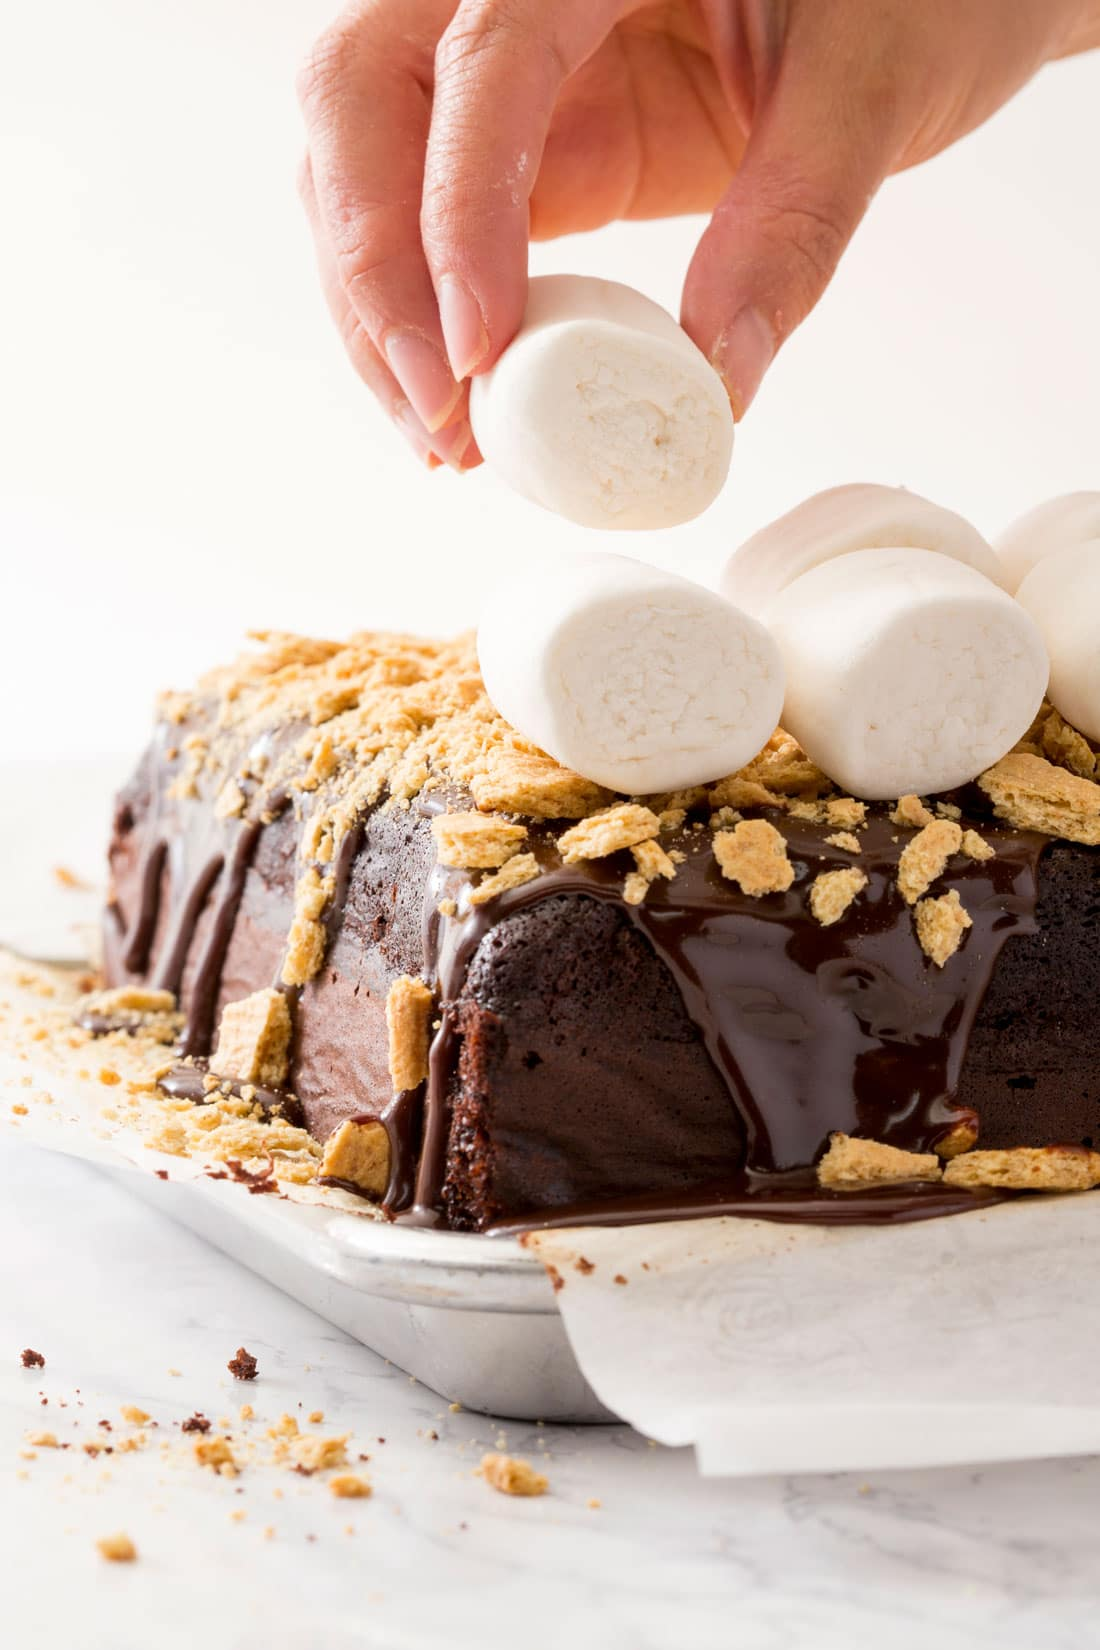 A hand placing marshmallows on top of Miss Jones Chocolate S'mores Poke Cake